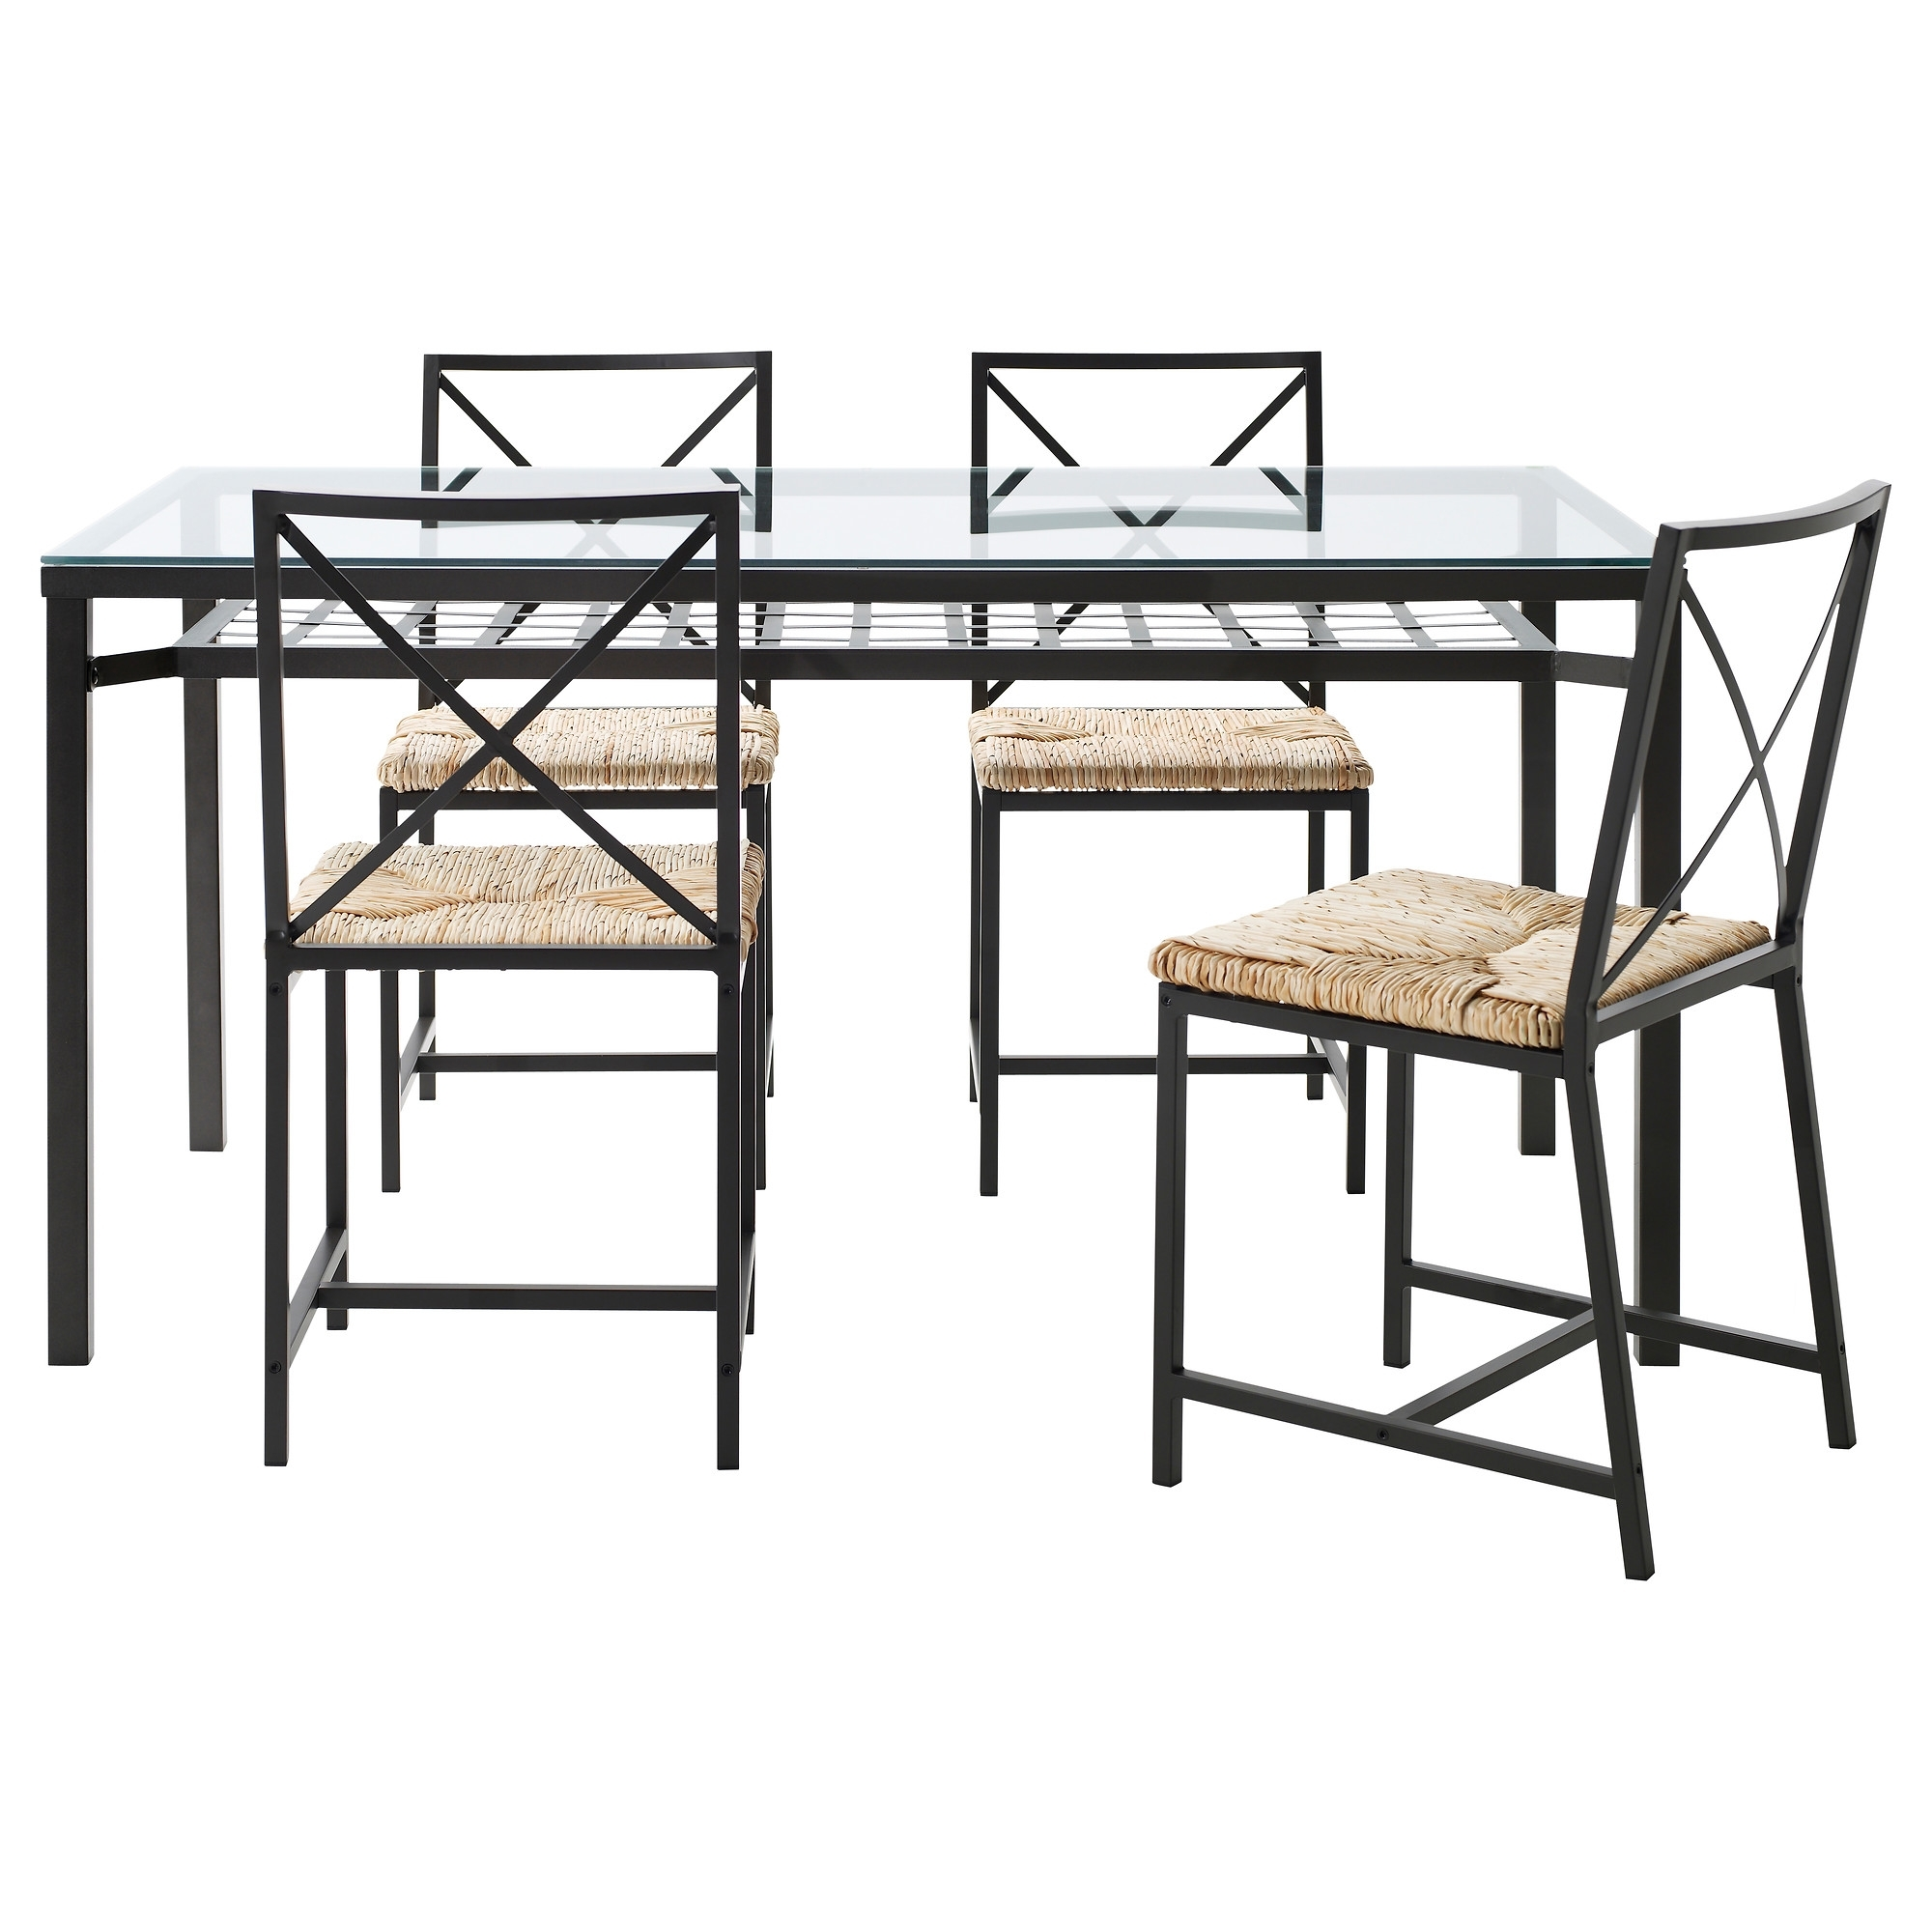 Ikea Round Dining Tables Set with regard to Newest Dining Room Tables Sets Ikea - Castrophotos